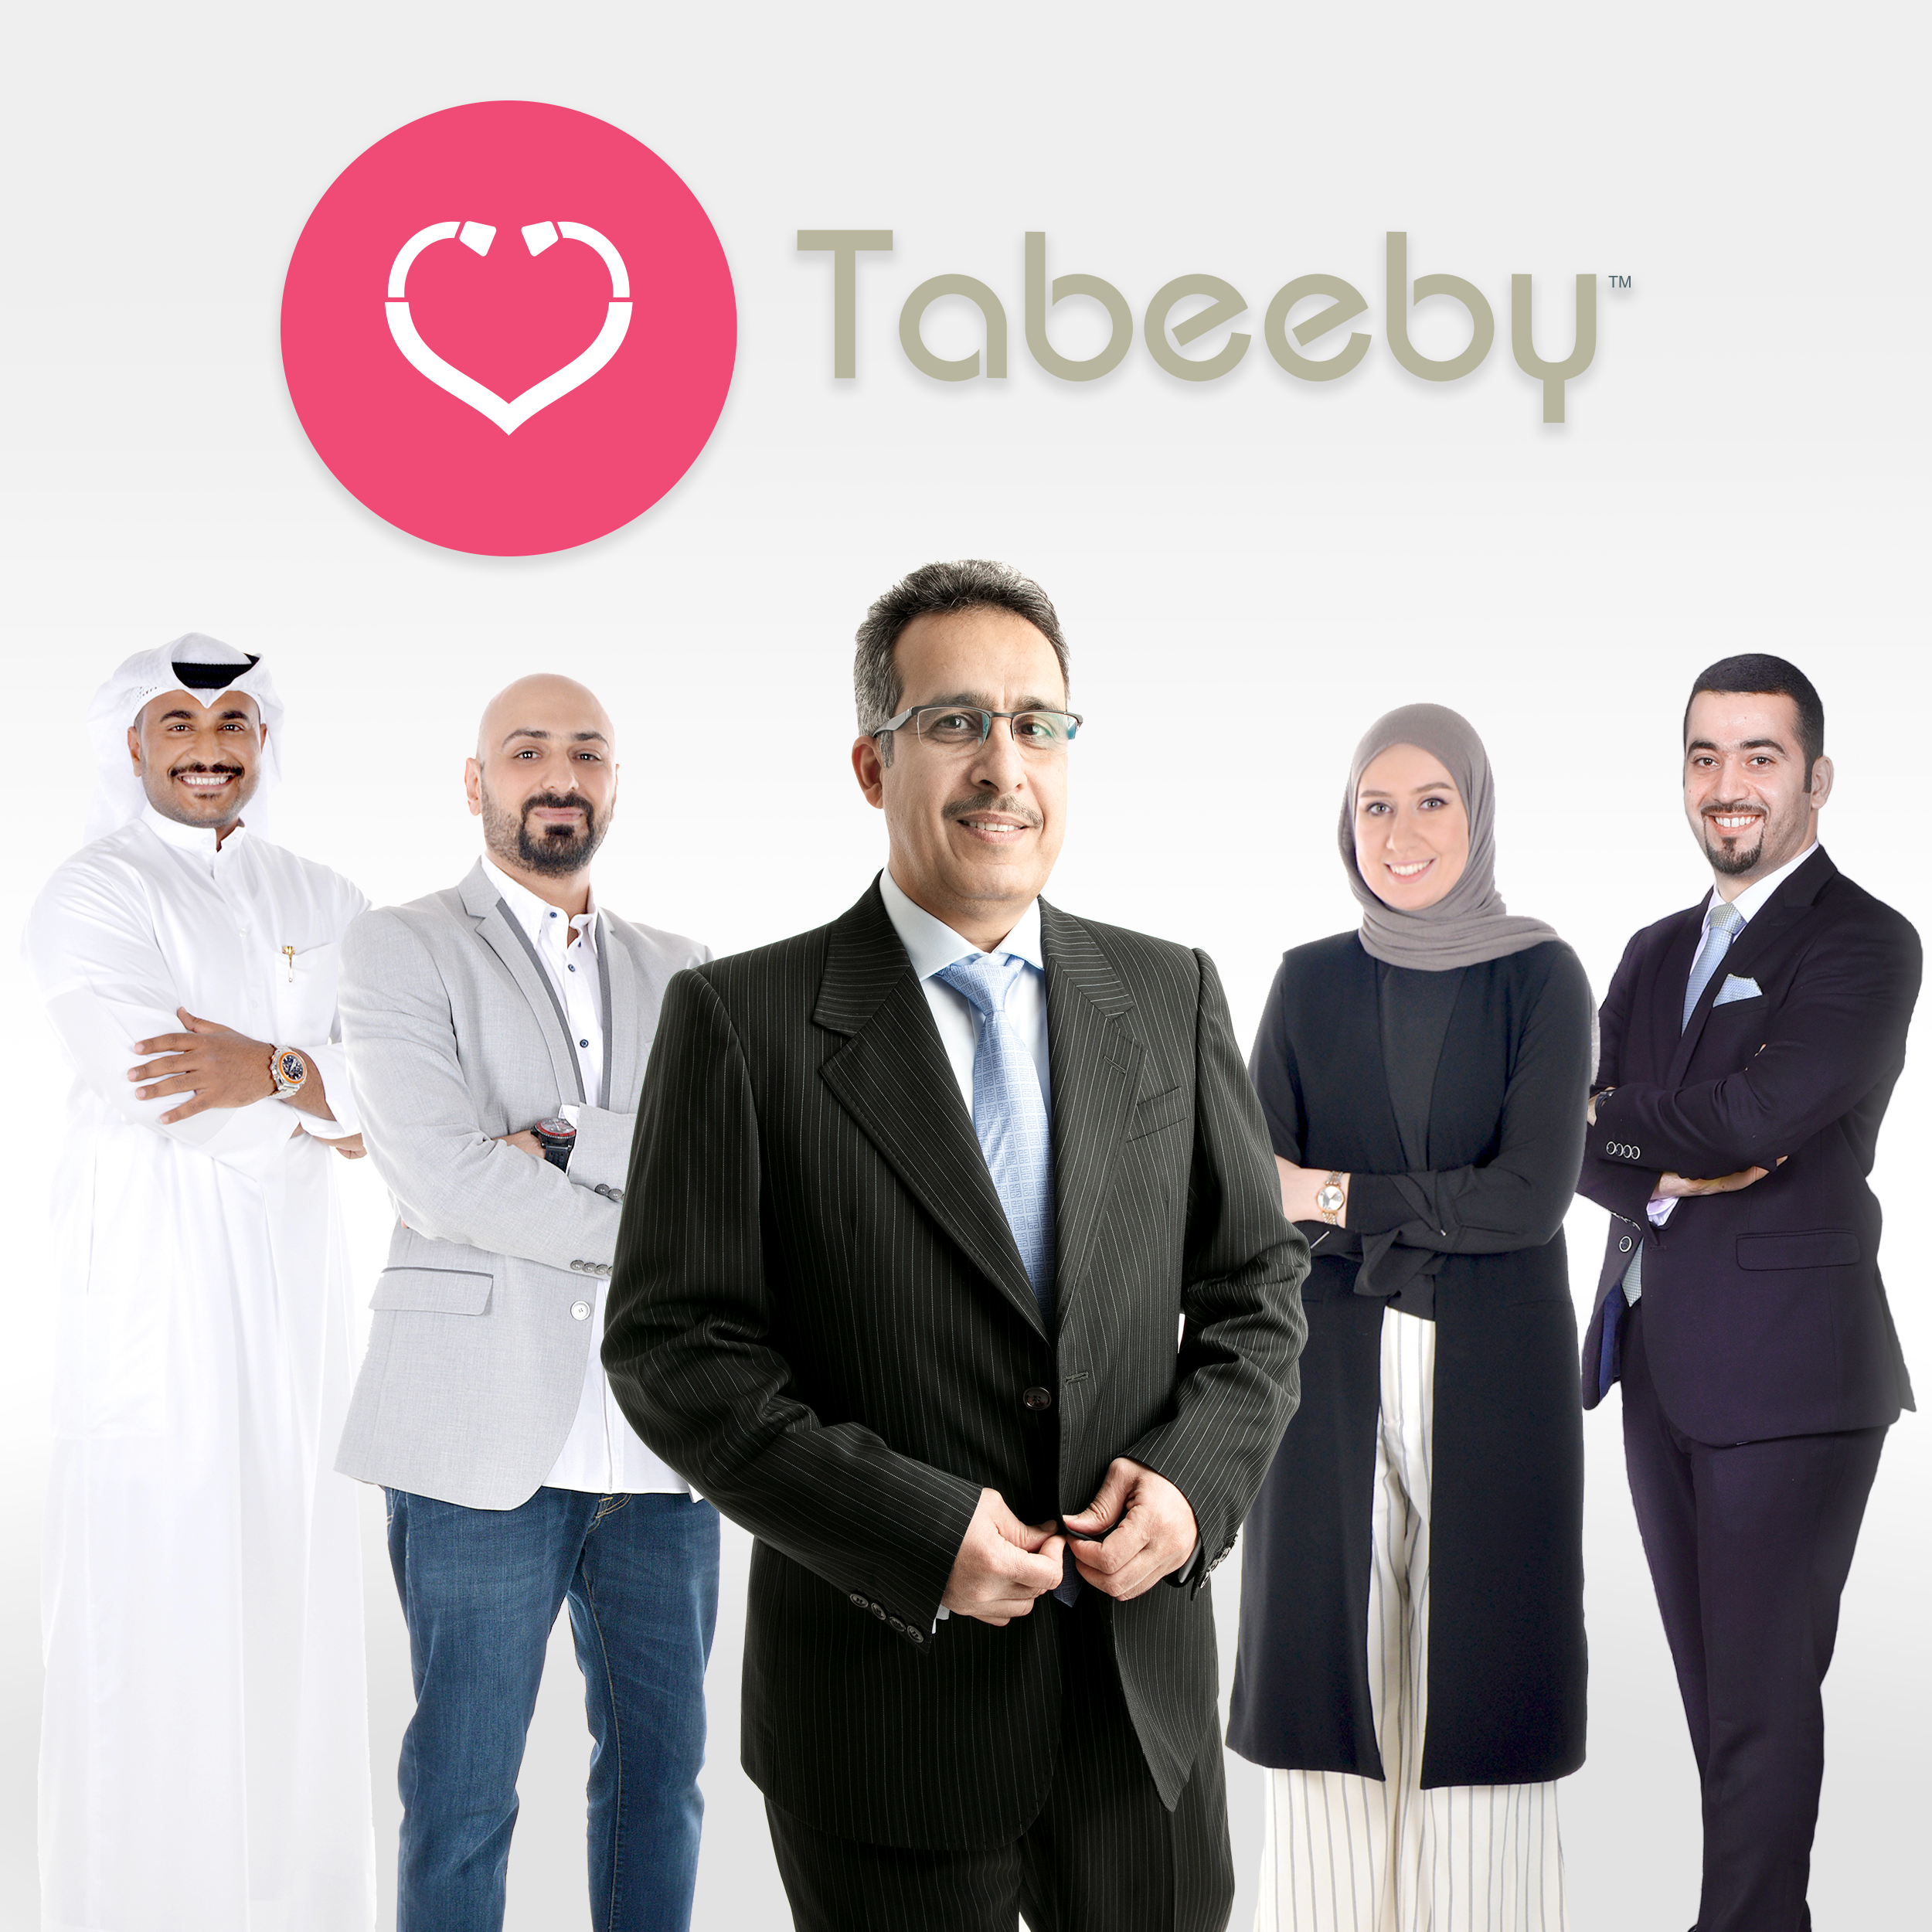 Ground One Ventures and Kuwait's Tabeeby Join Forces to Disrupt Digital Healthcare in GCC